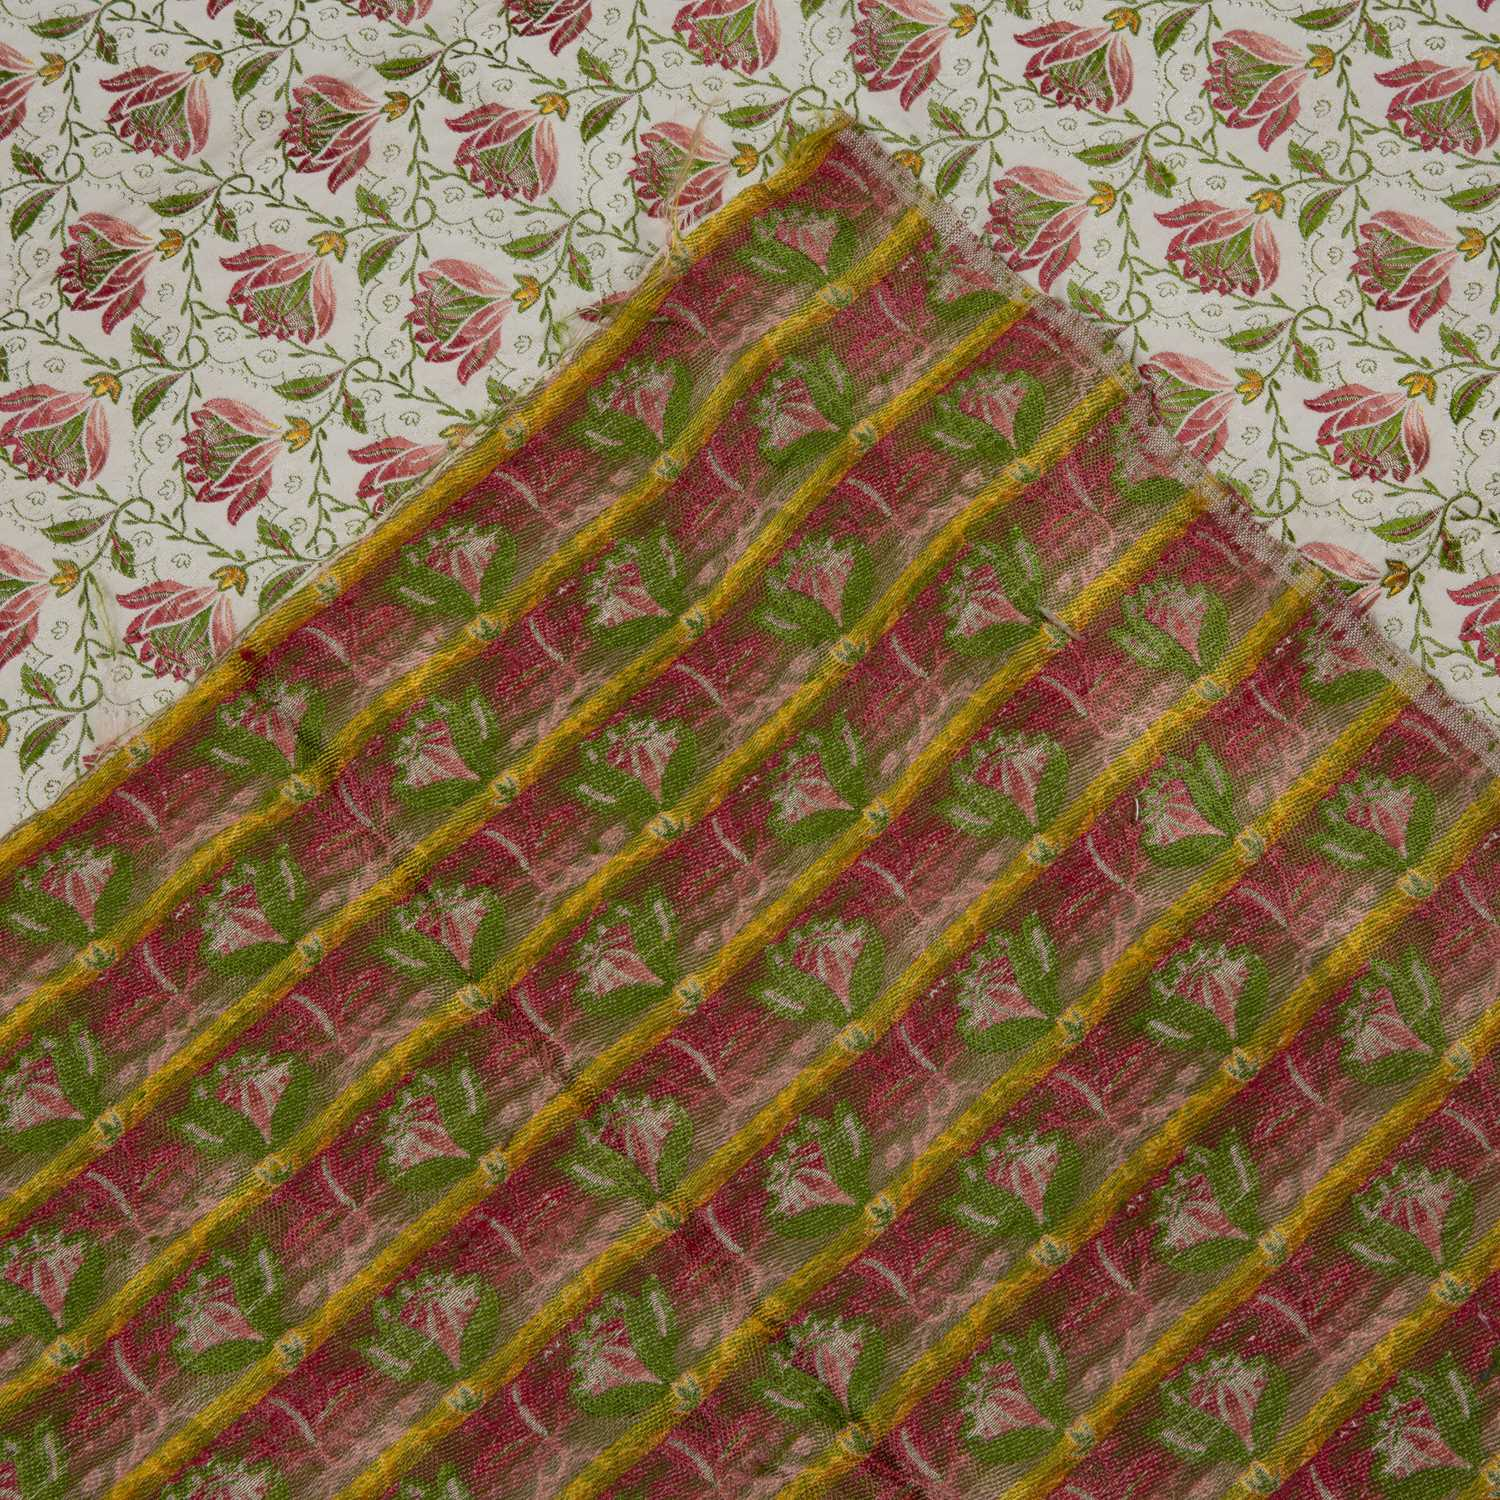 A silk brocade fragment with apple green and red flower repeating motif, 146 x 120cm - Image 2 of 2